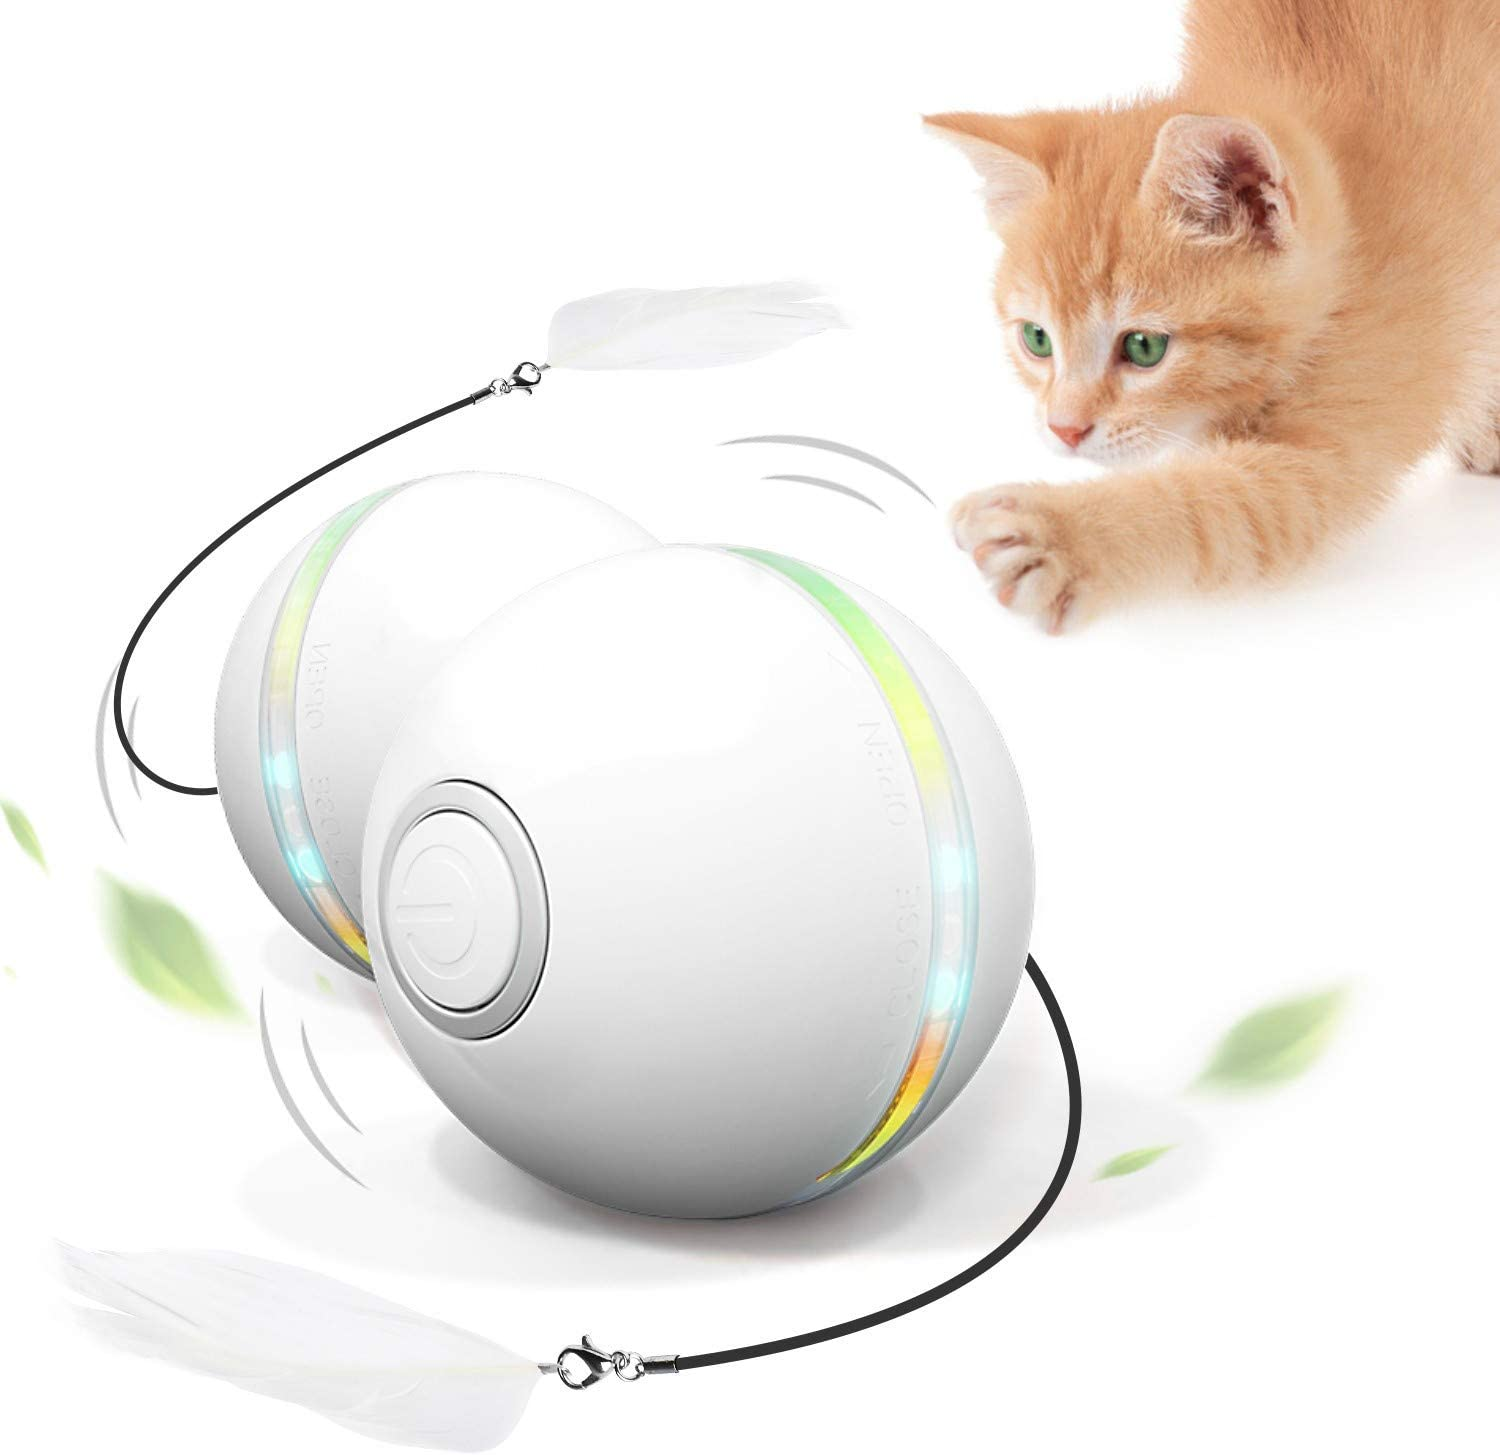 Feeko Interactive Cat Toys for Indoor Cats, Automatic Rolling Kitty Toys, Build-in Catnip Spinning Color Led Light, USB Charging Timing Motion Ball with Feather/Bells Toys for Cats/Kitten (White) : Pet Supplies